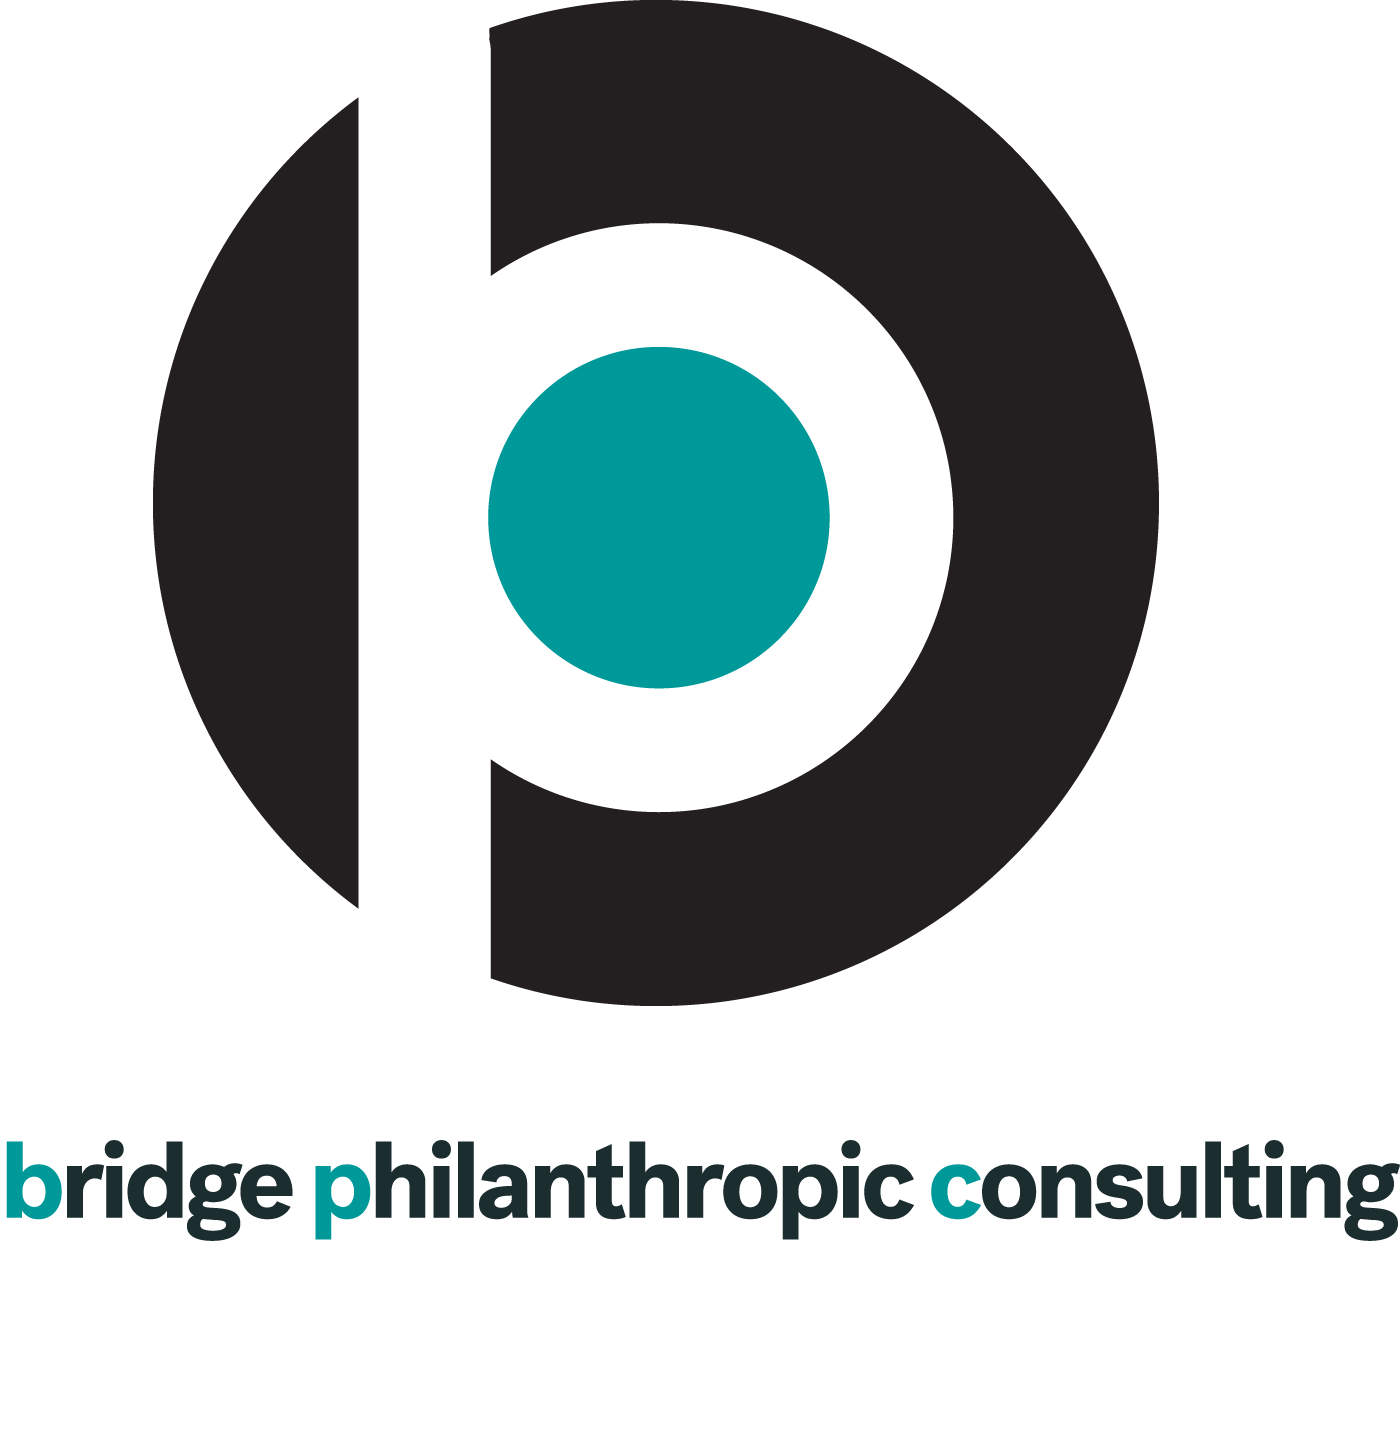 Bridge philanthropic consulting and. Volunteering clipart philanthropy